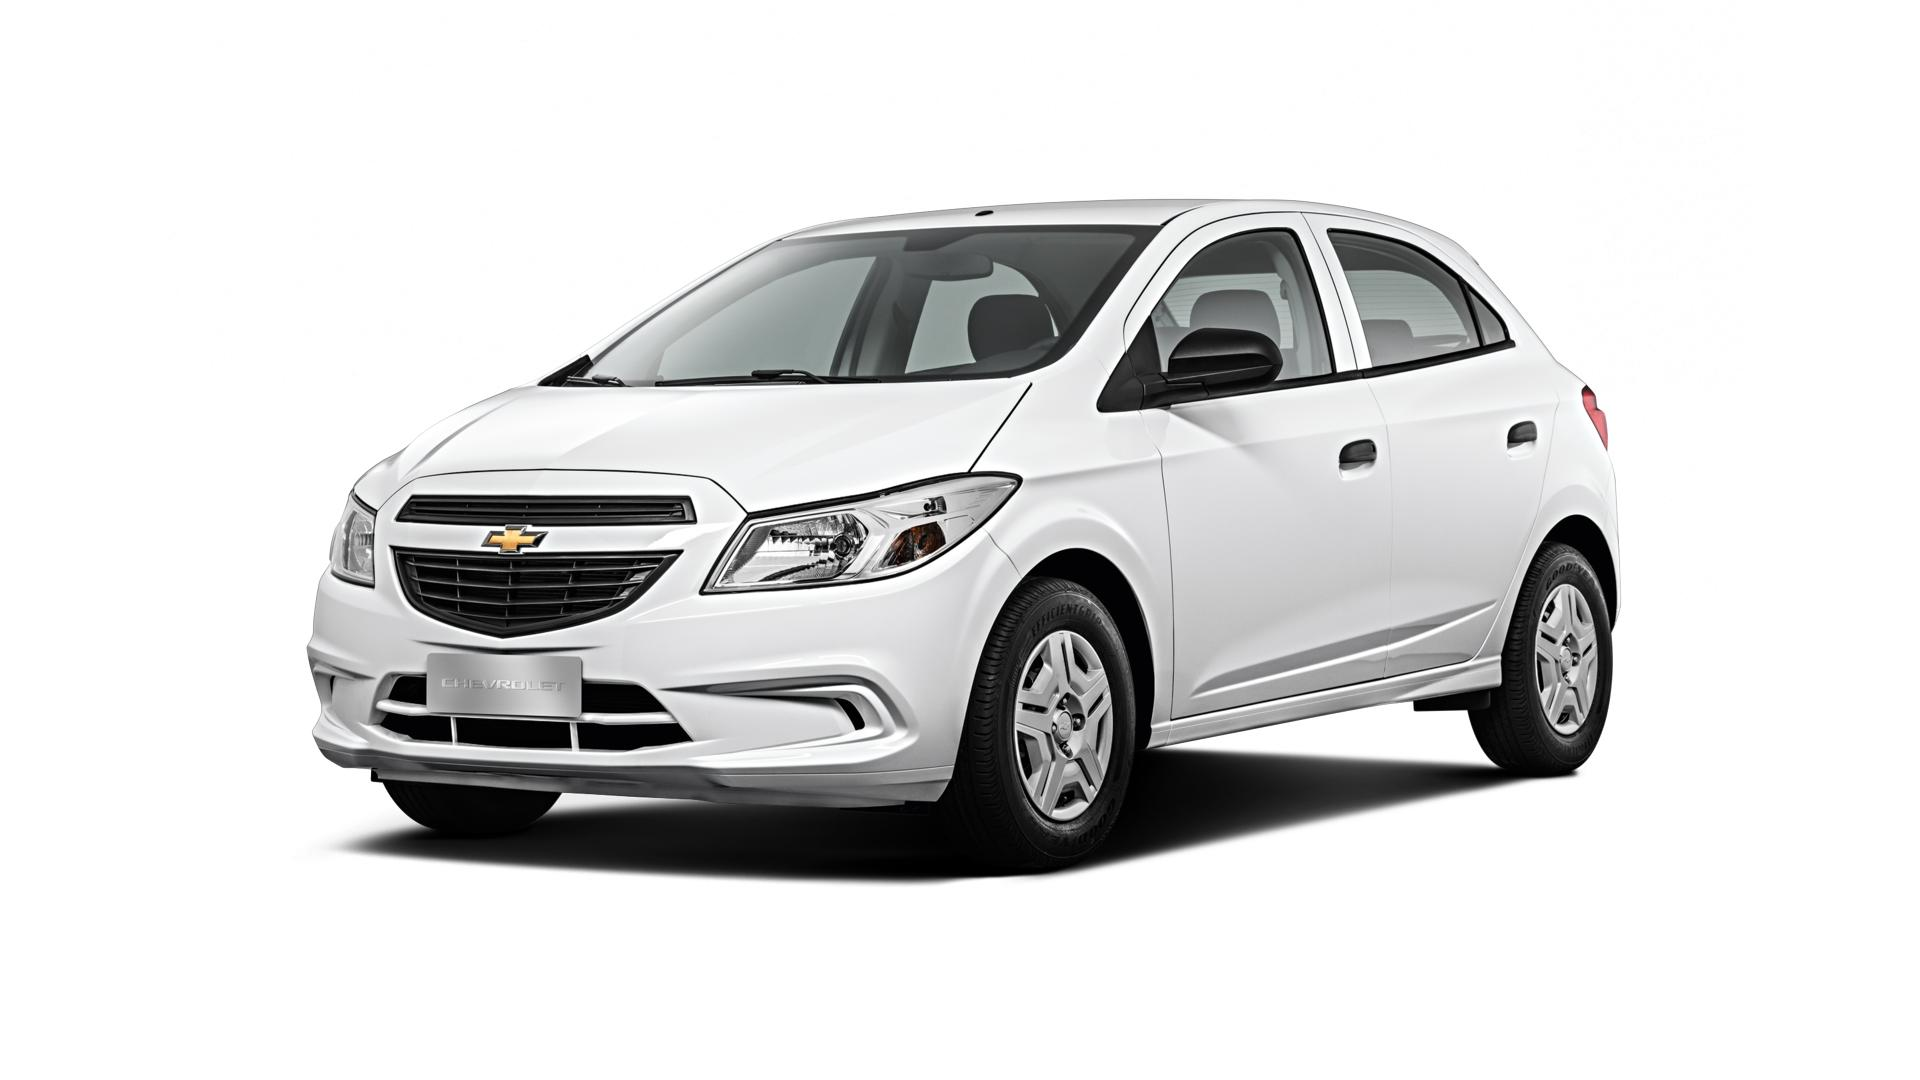 CHEVROLET ONIX JOY BLACK SPE 2020